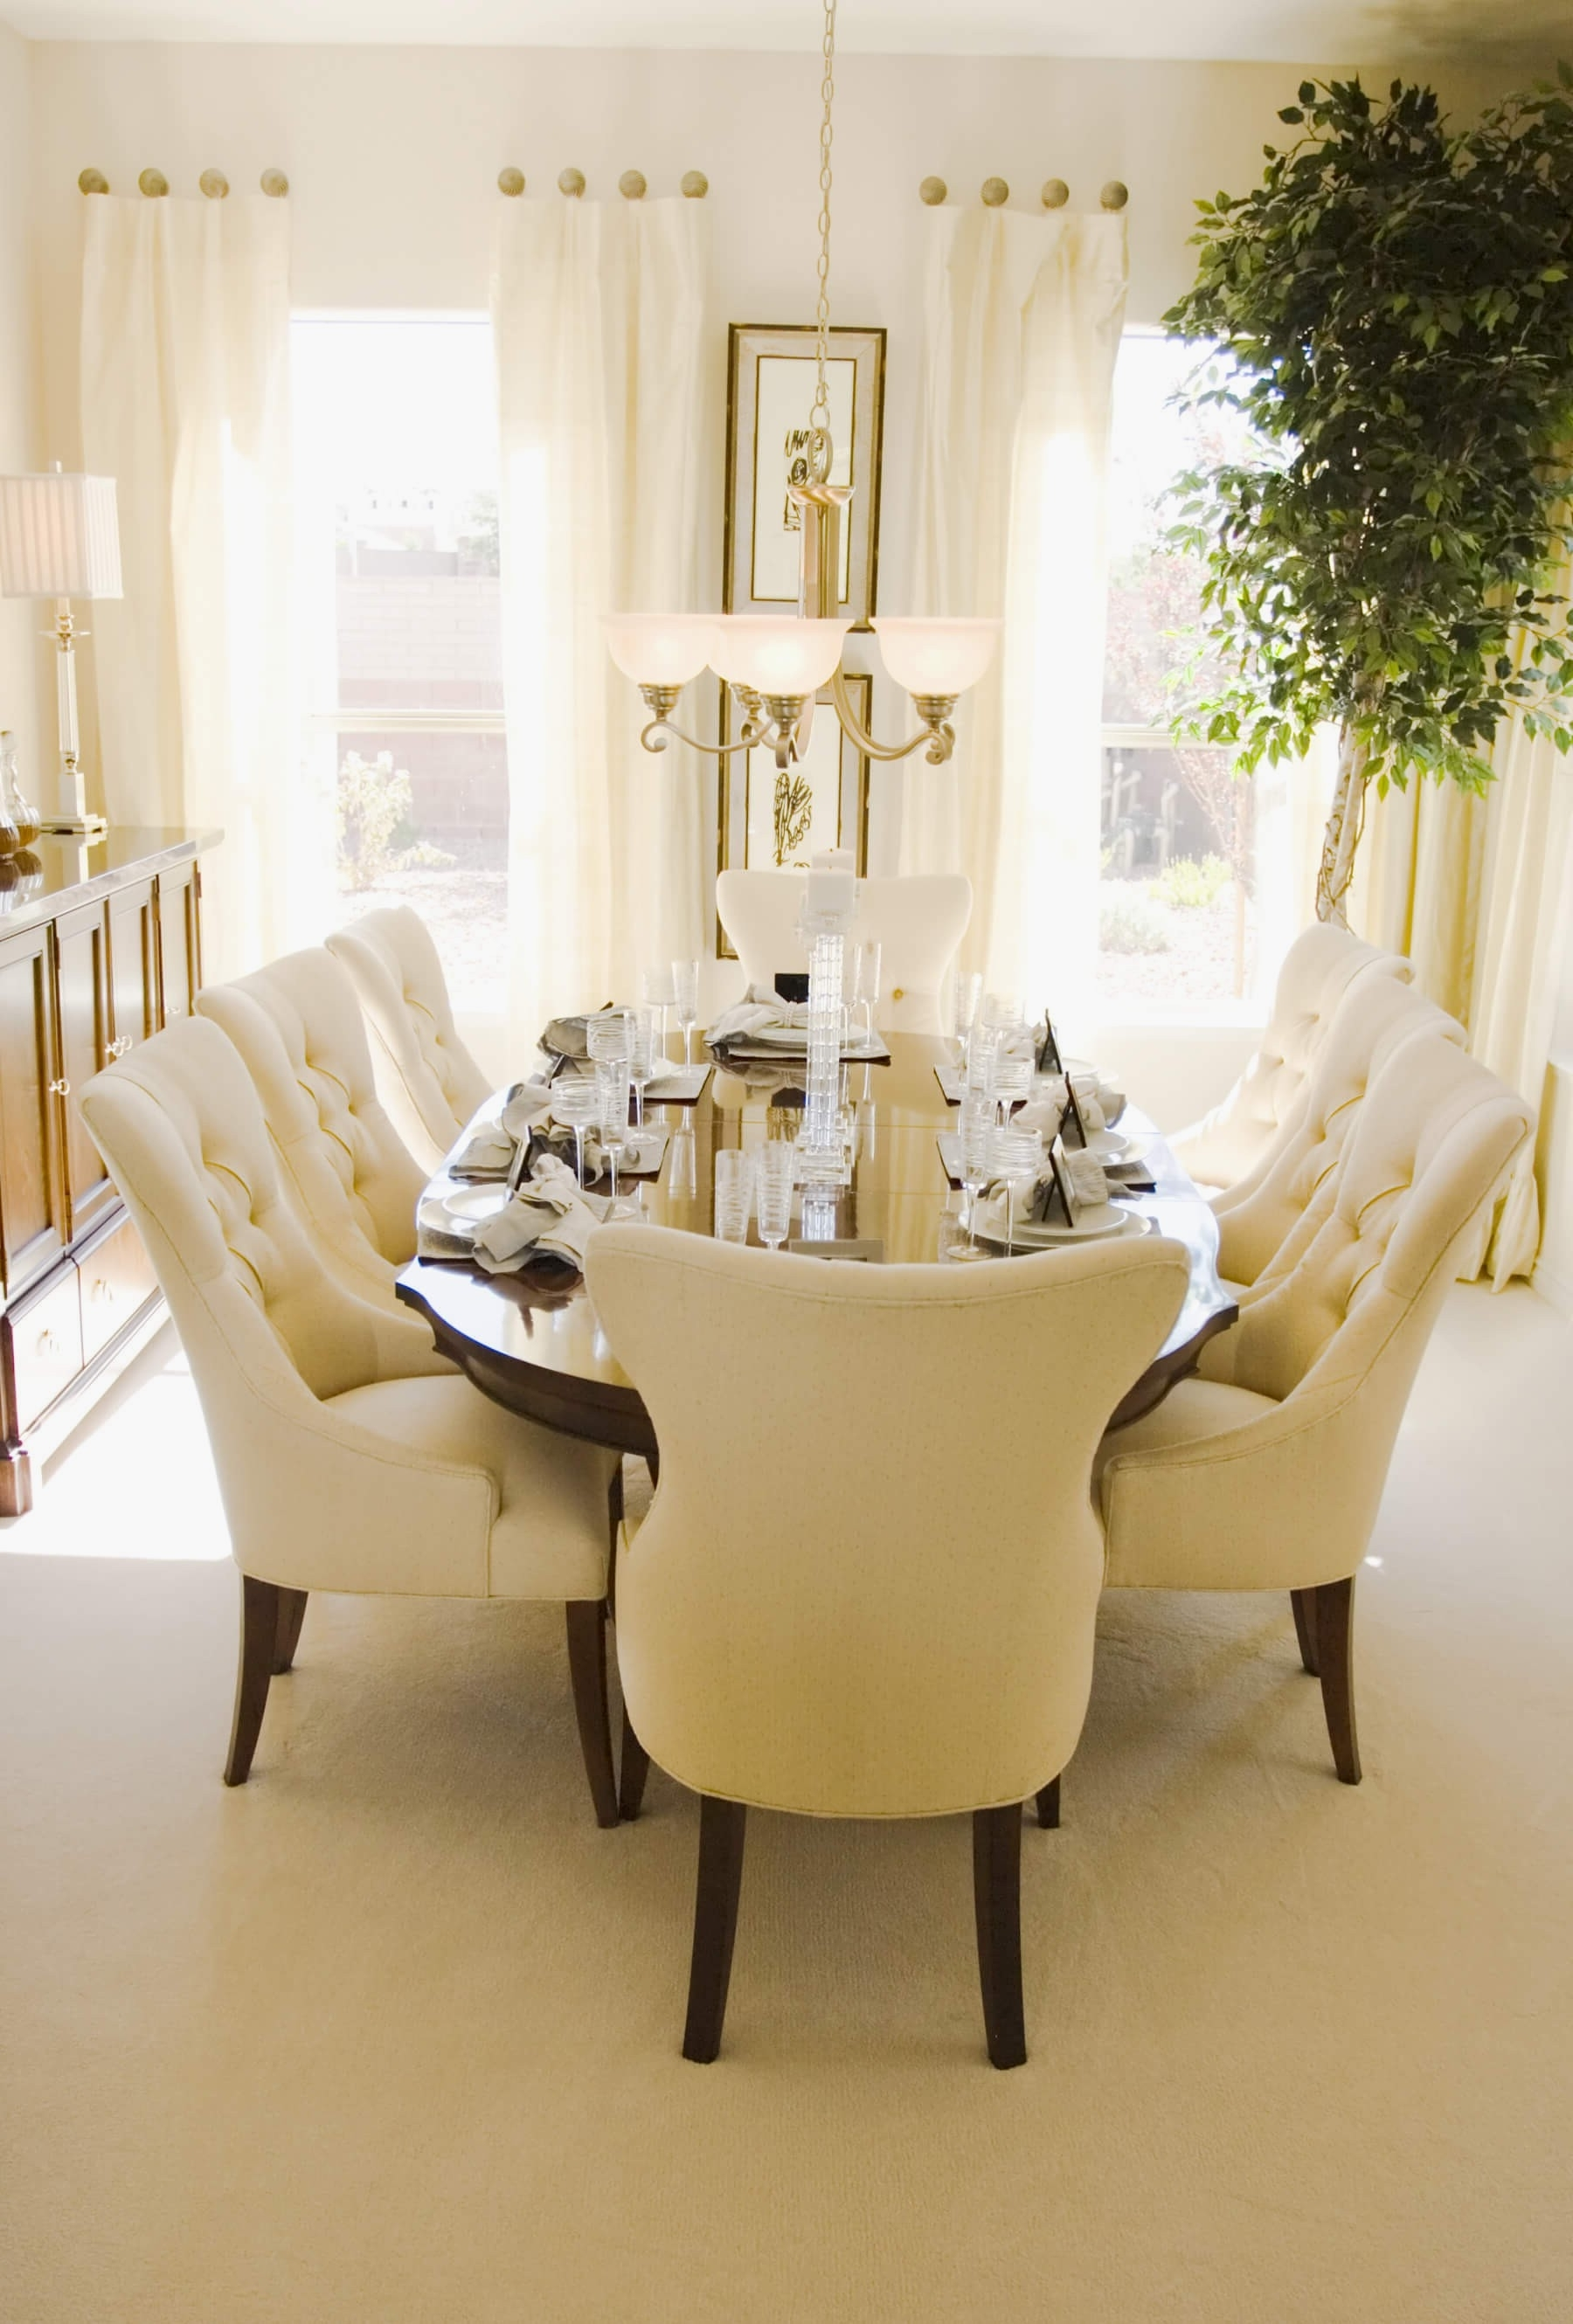 Well Known Cream Dining Table Sets Lovely Andalusia Home Decor Intended For Cream Dining Tables And Chairs (View 23 of 25)